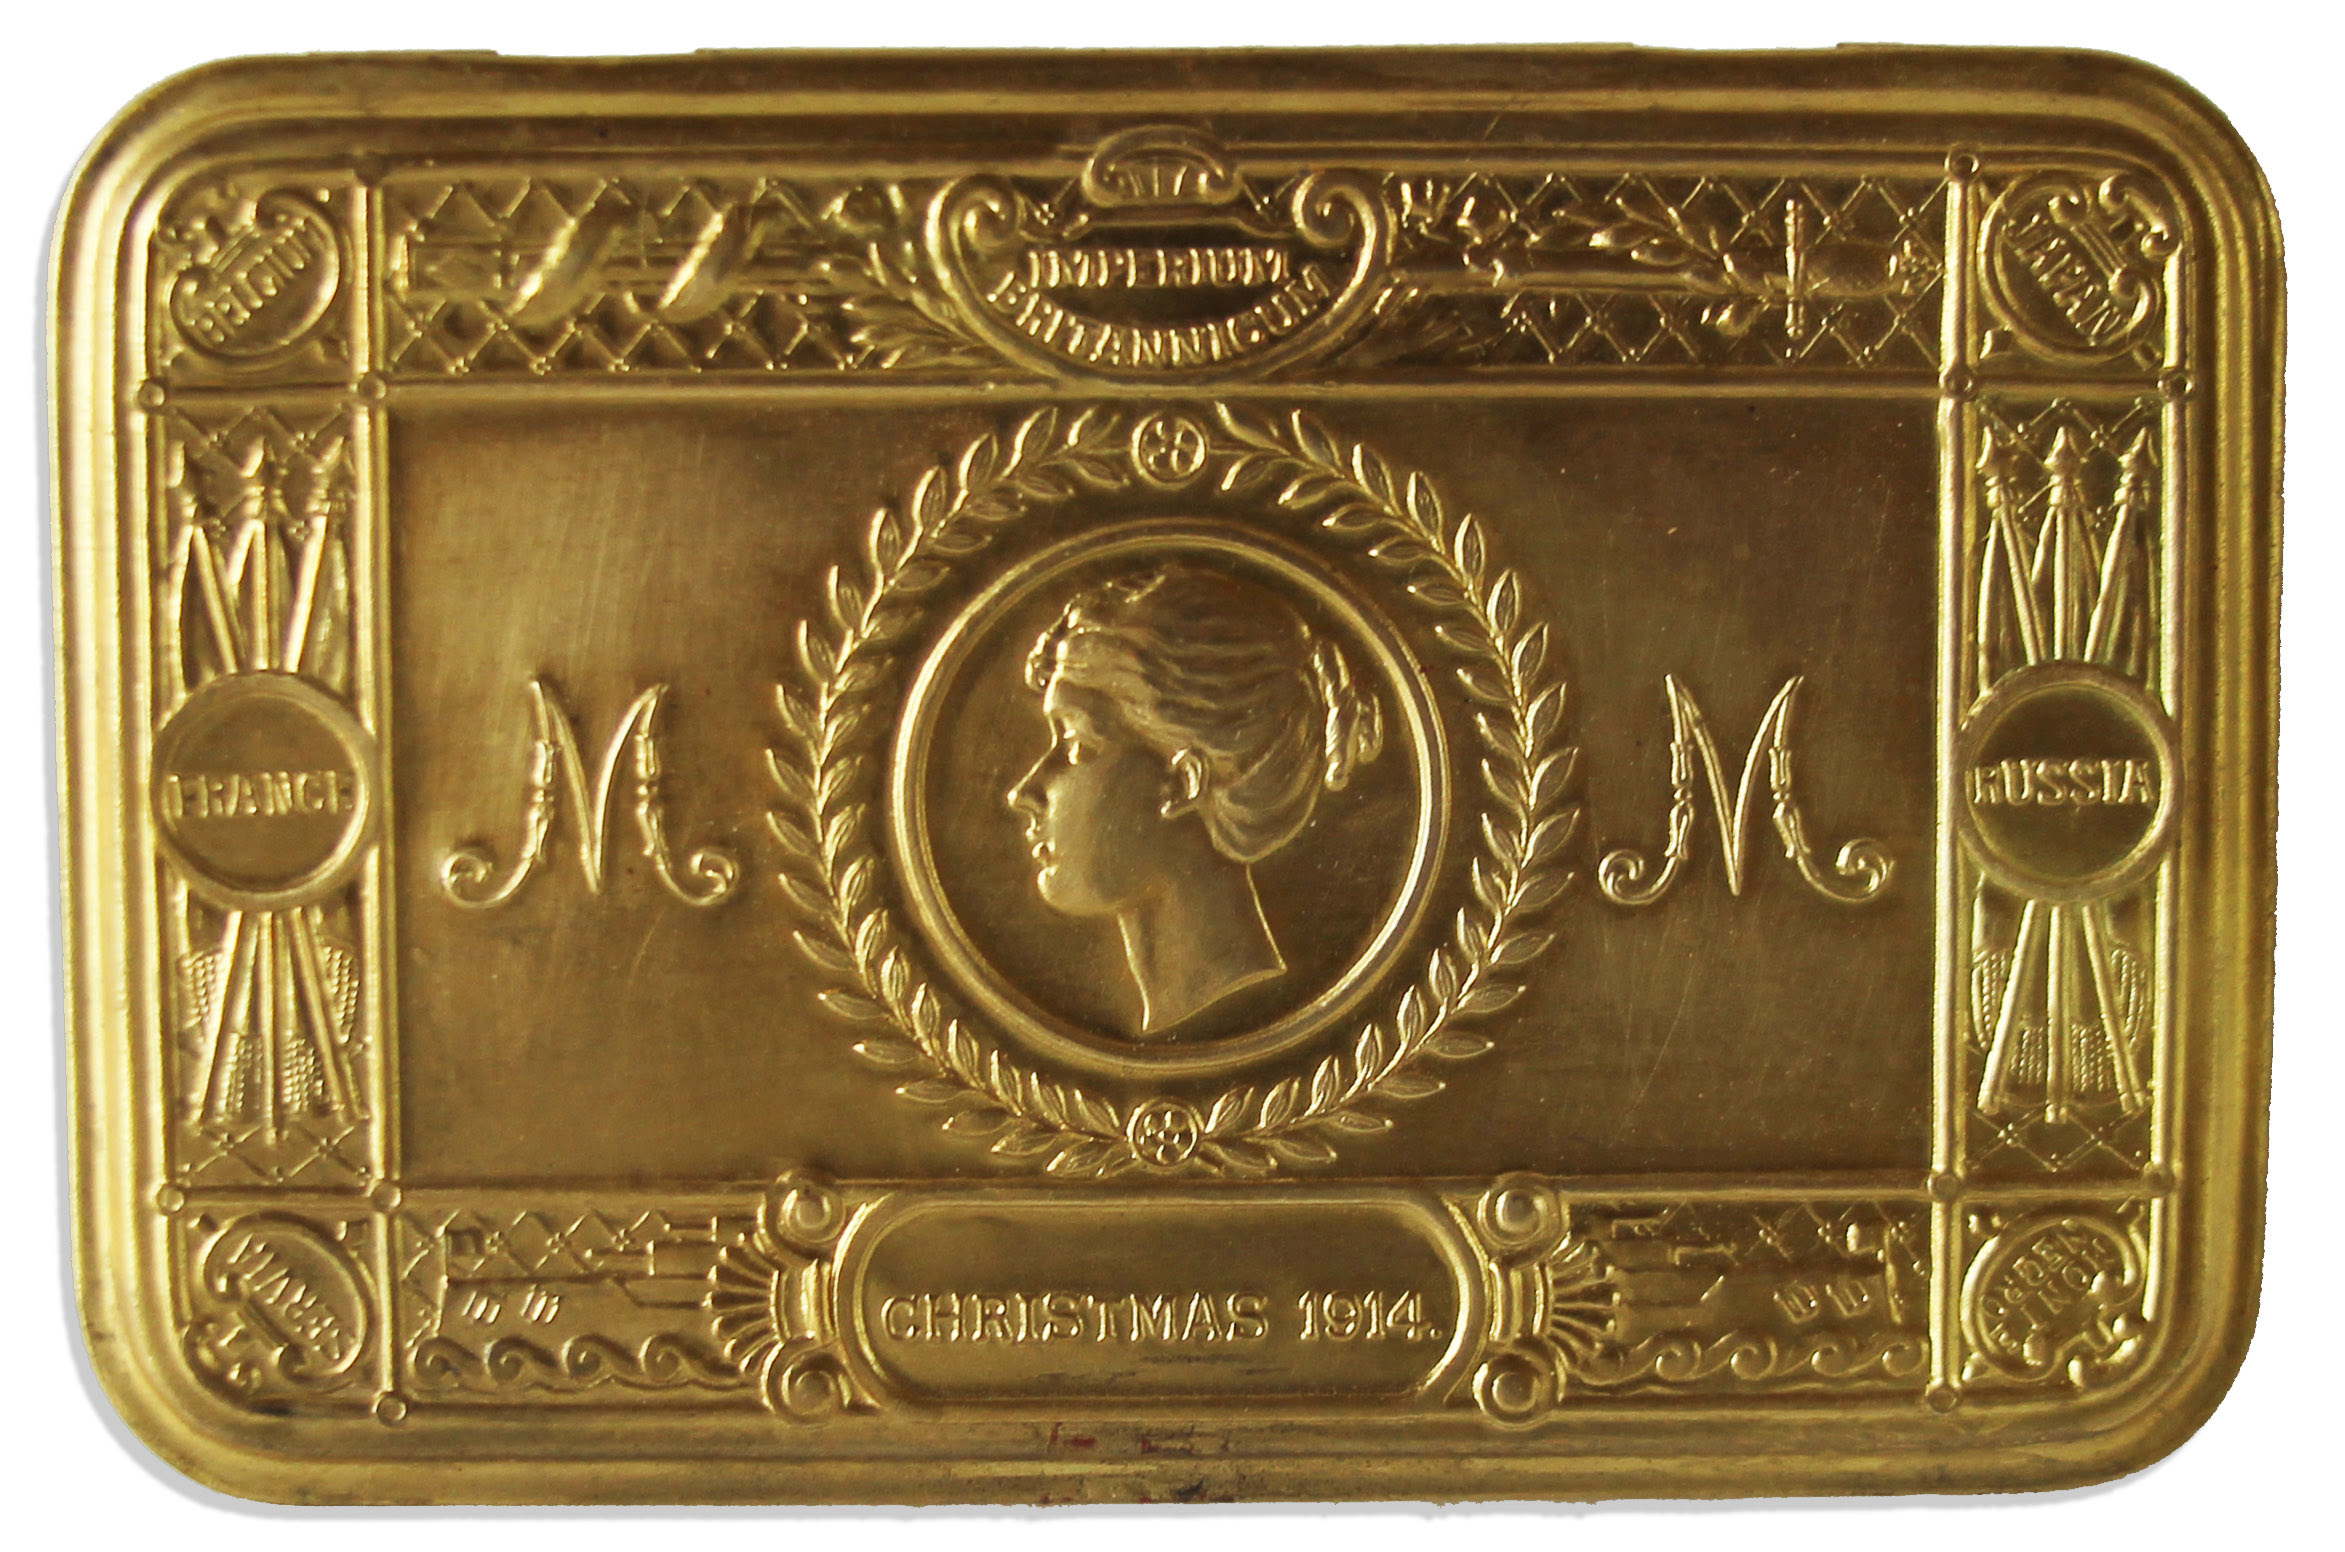 The lid of the brass tin designed for enlisted men, showing Mary's head in profile and the other Imperial symbols